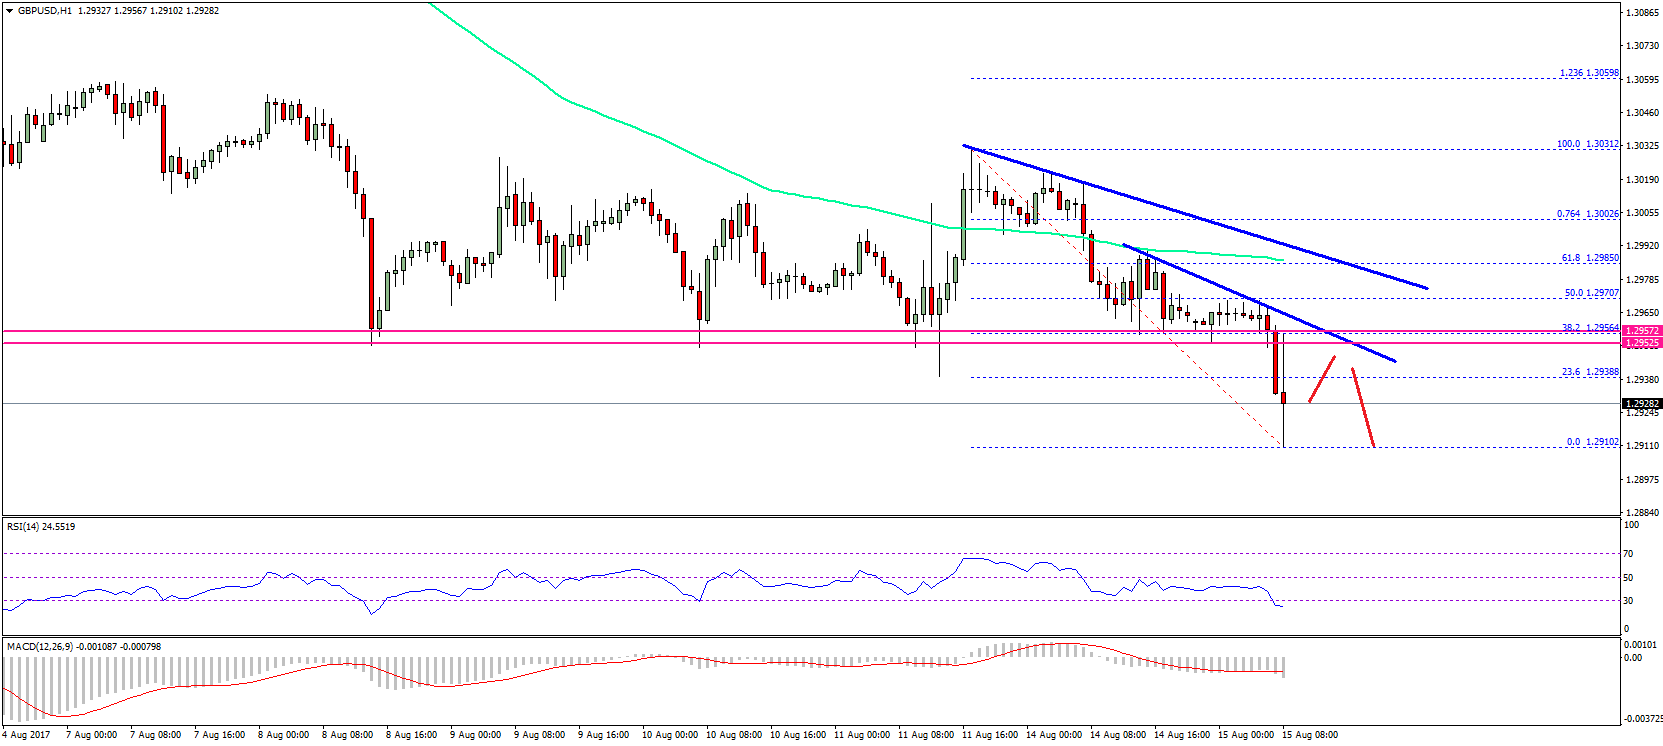 Us gbp forex